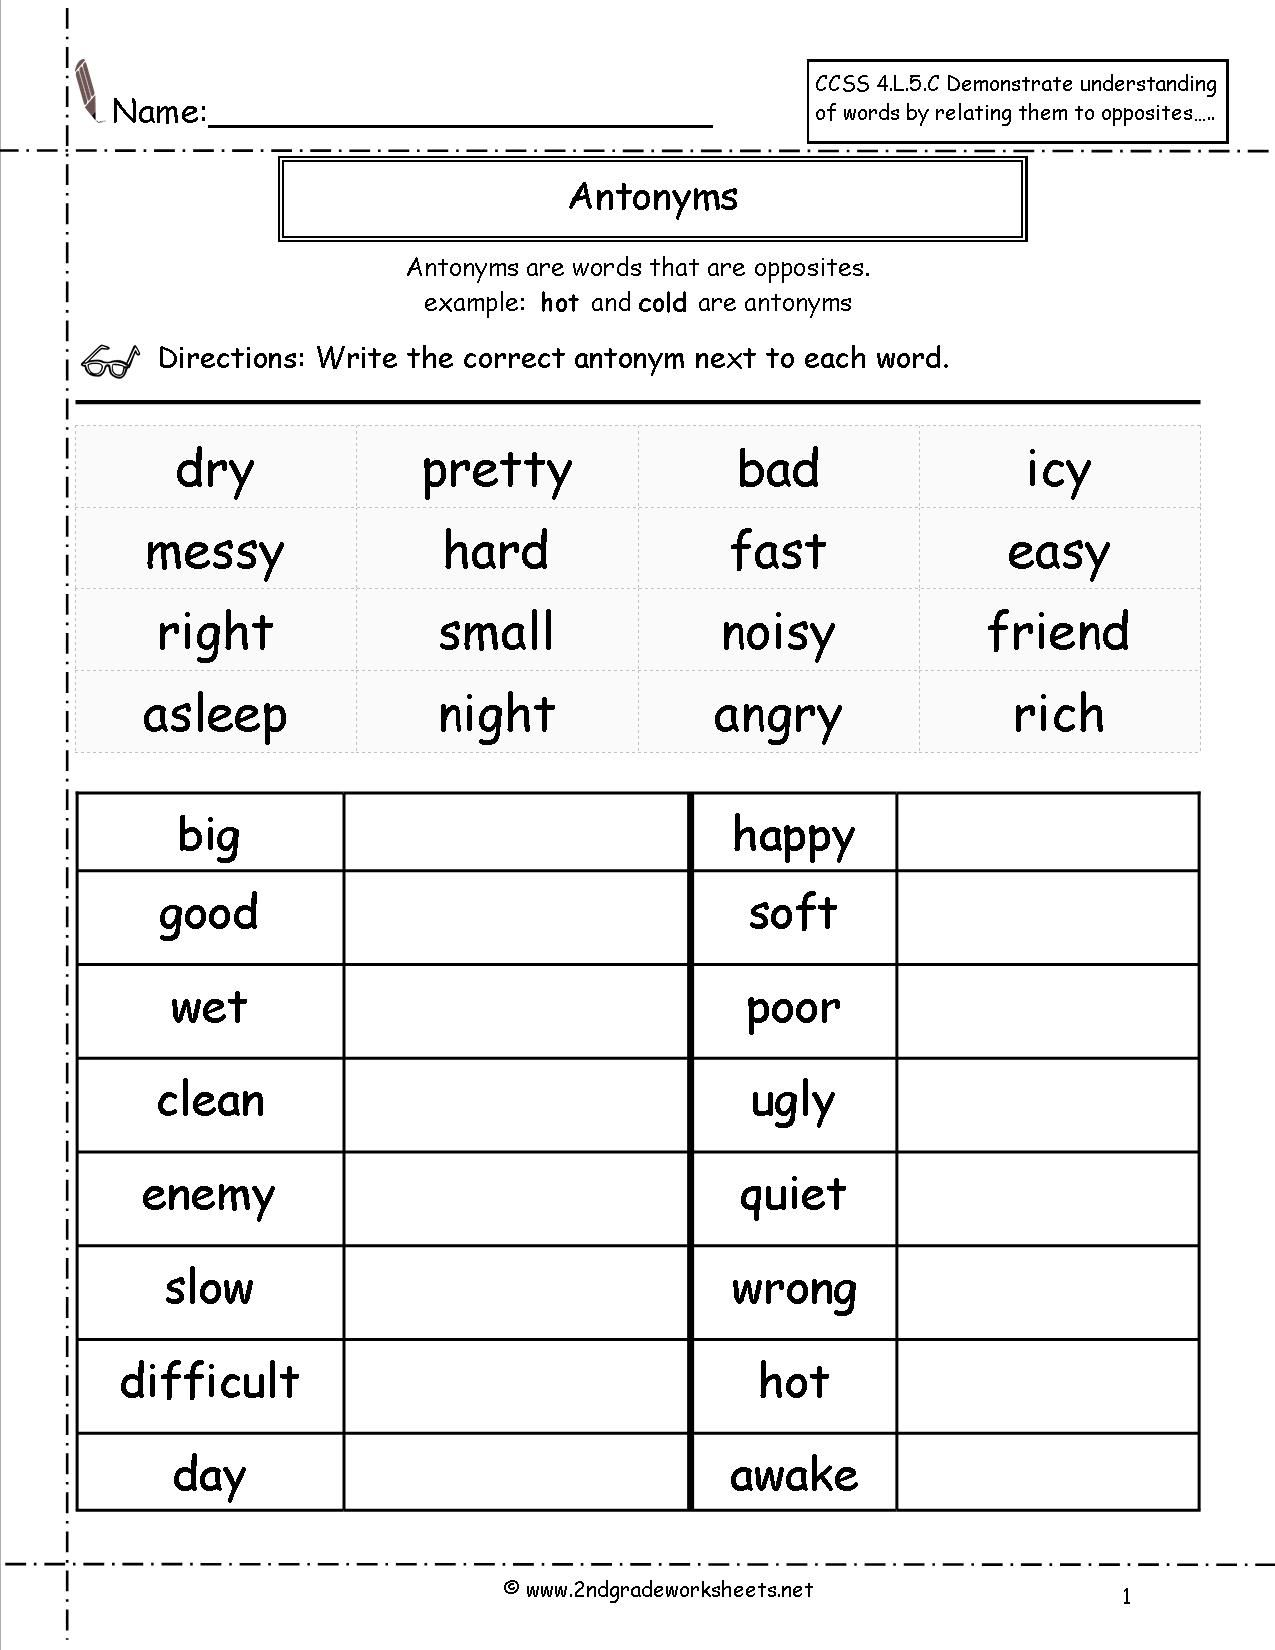 Antonyms Worksheet